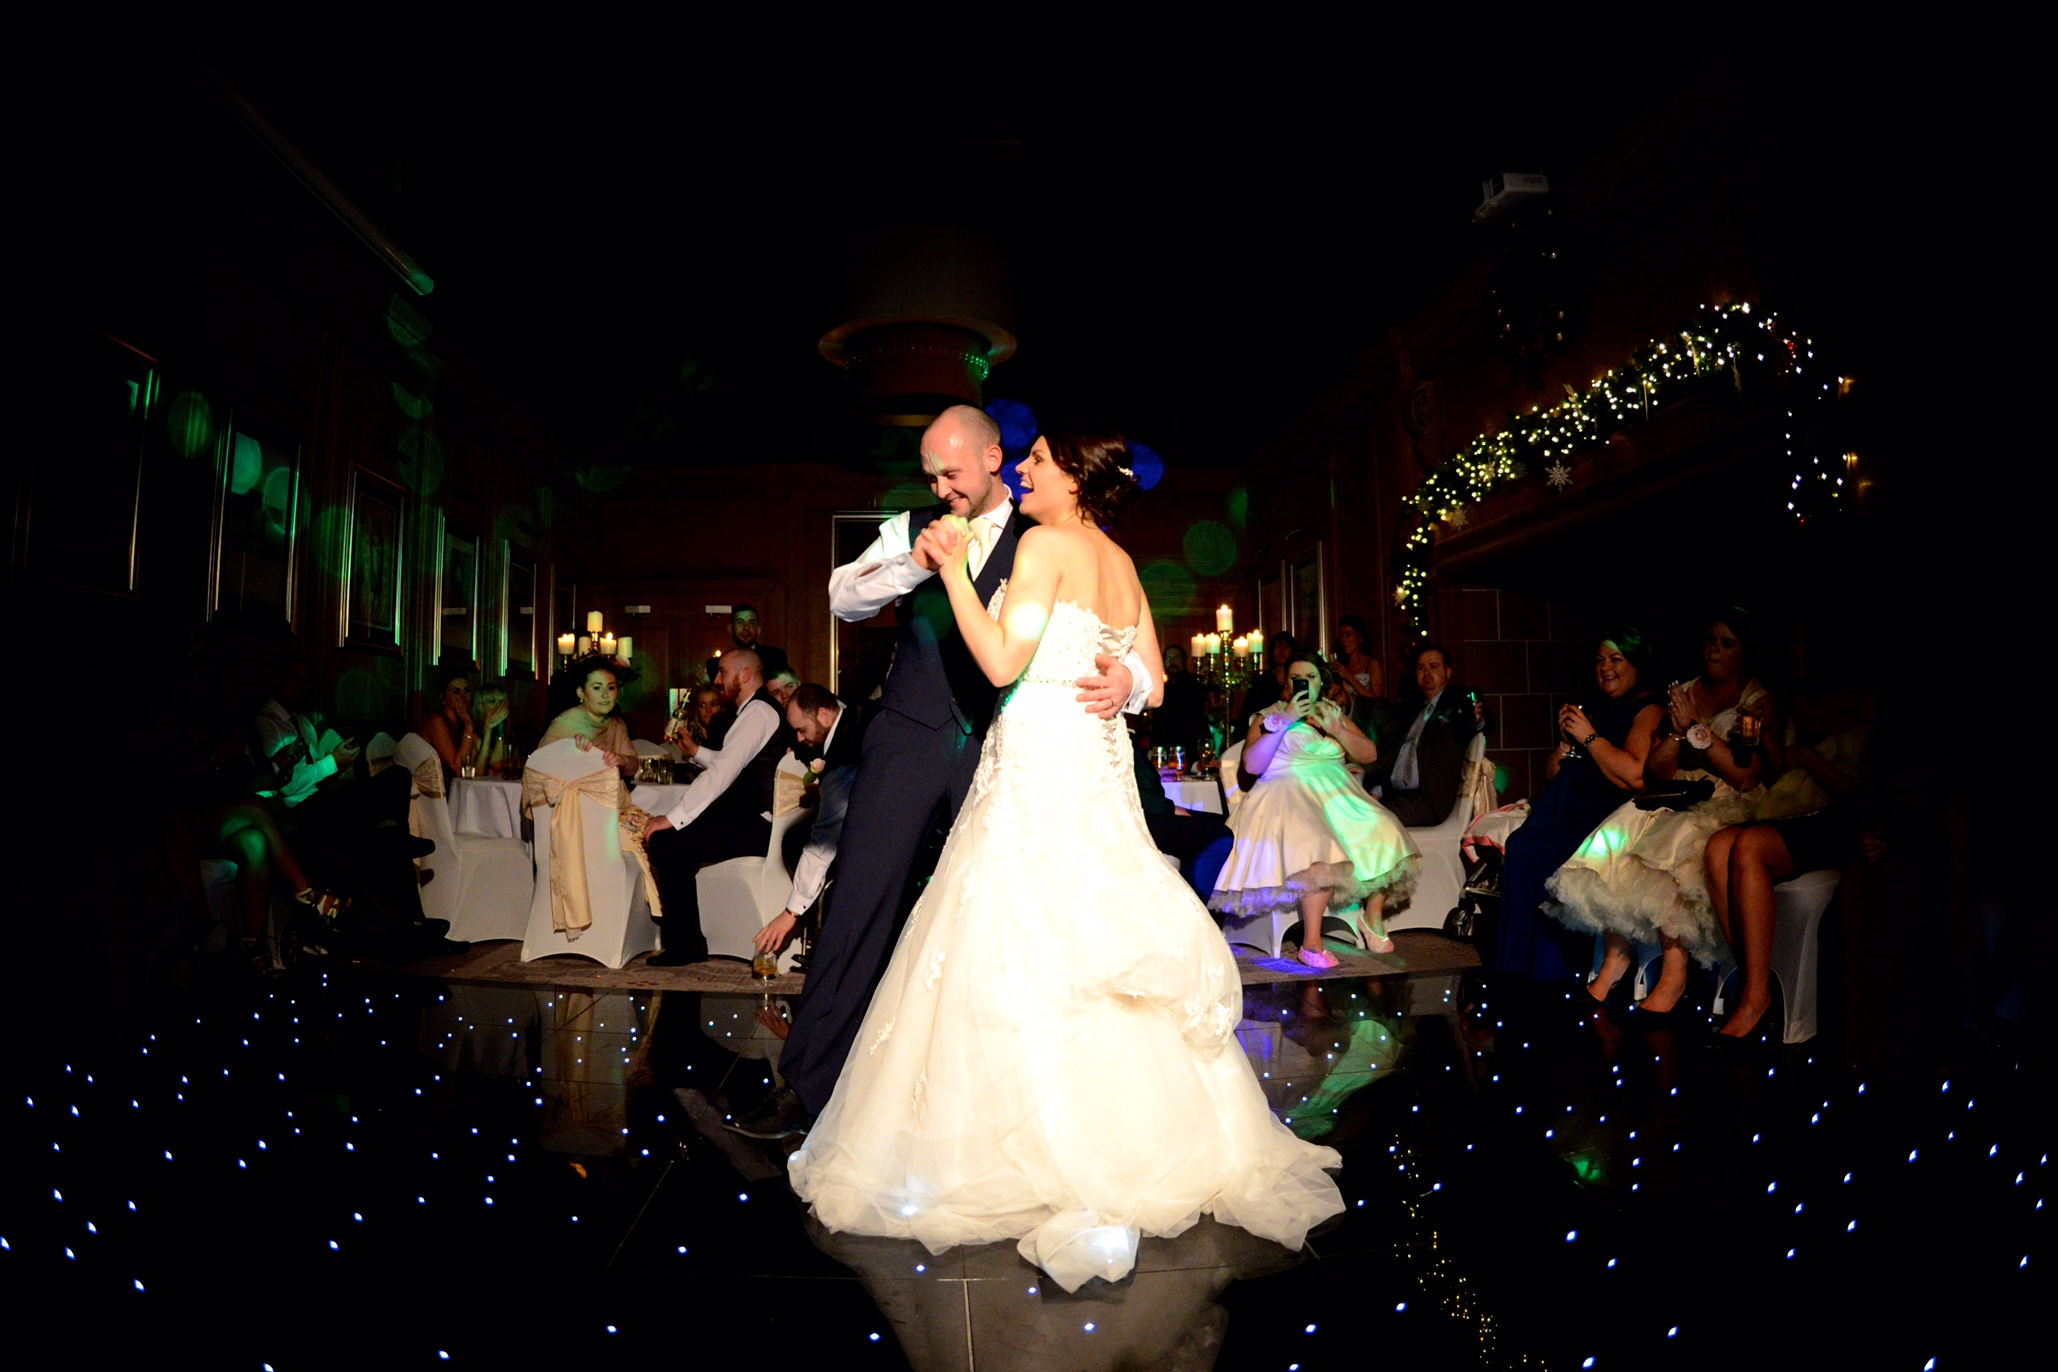 Bride and groom first dance - lit up floor